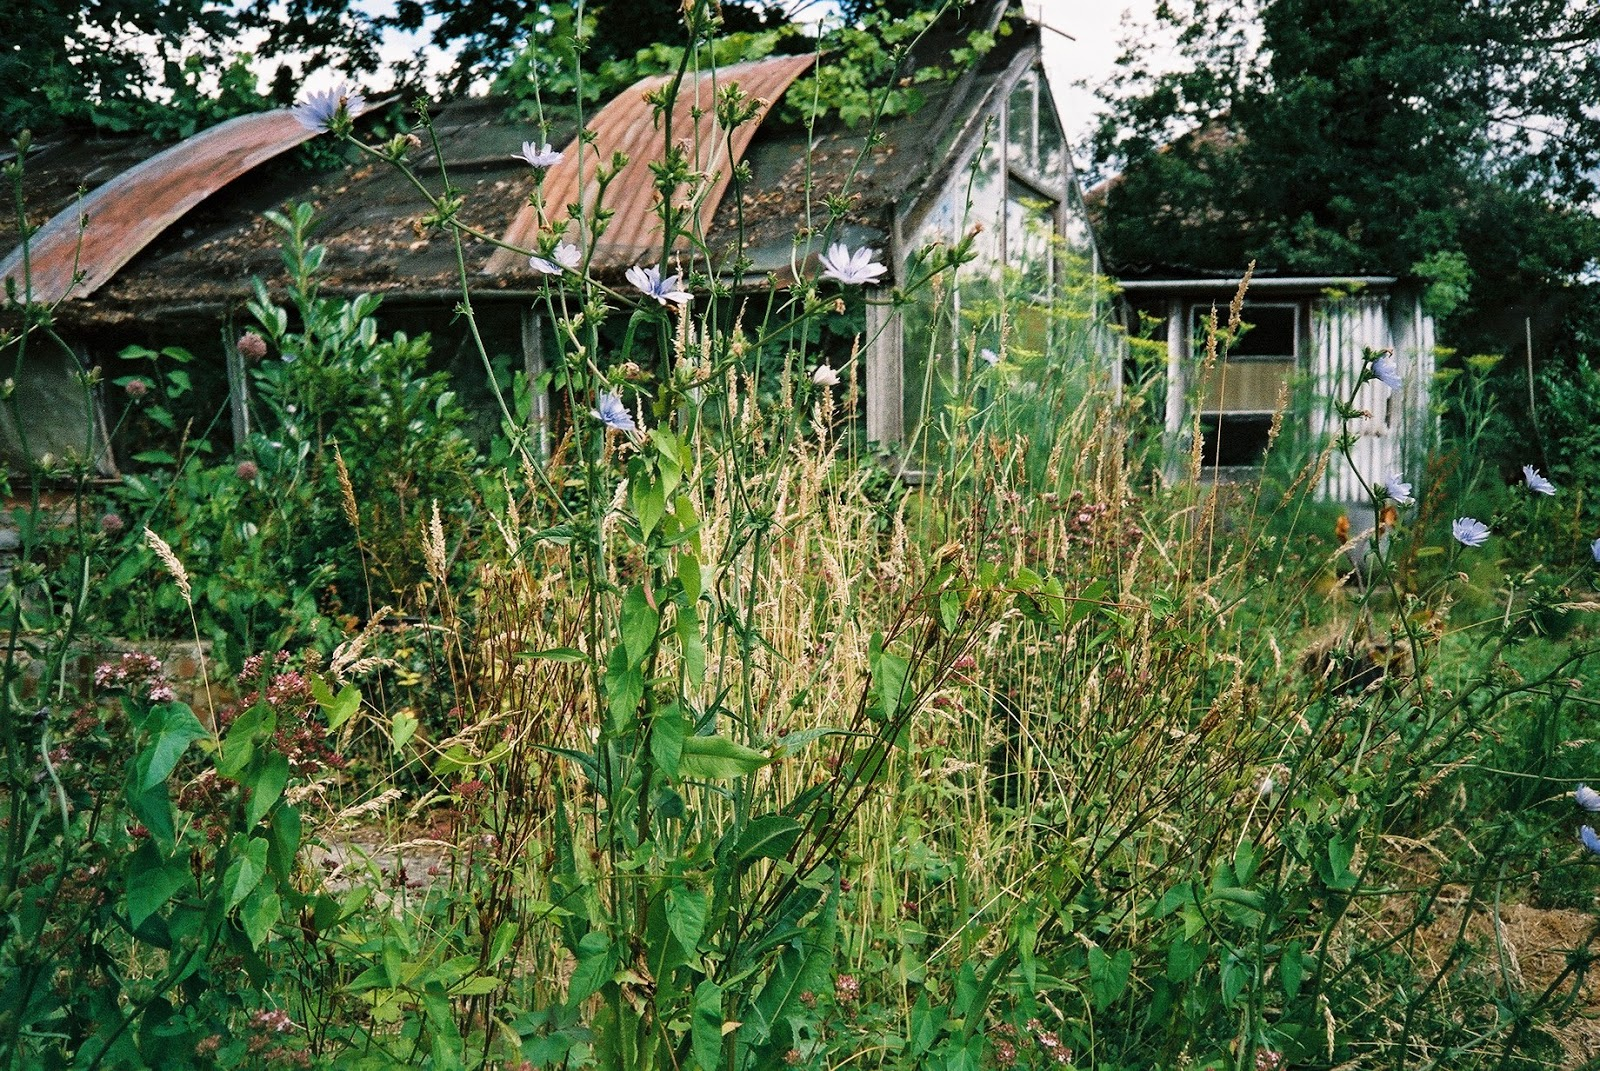 WILD FLOWERS, SUBURBAN FOARGING, FENNEL, CHICORY, MARGORAM, DERELICT BUILDINGS, SUBURBIA, CORRUGATED IRON ROOF, © VAC 100 DAYS 4 MILLION CONVERSATIONS, 2015 GENERAL ELECTION